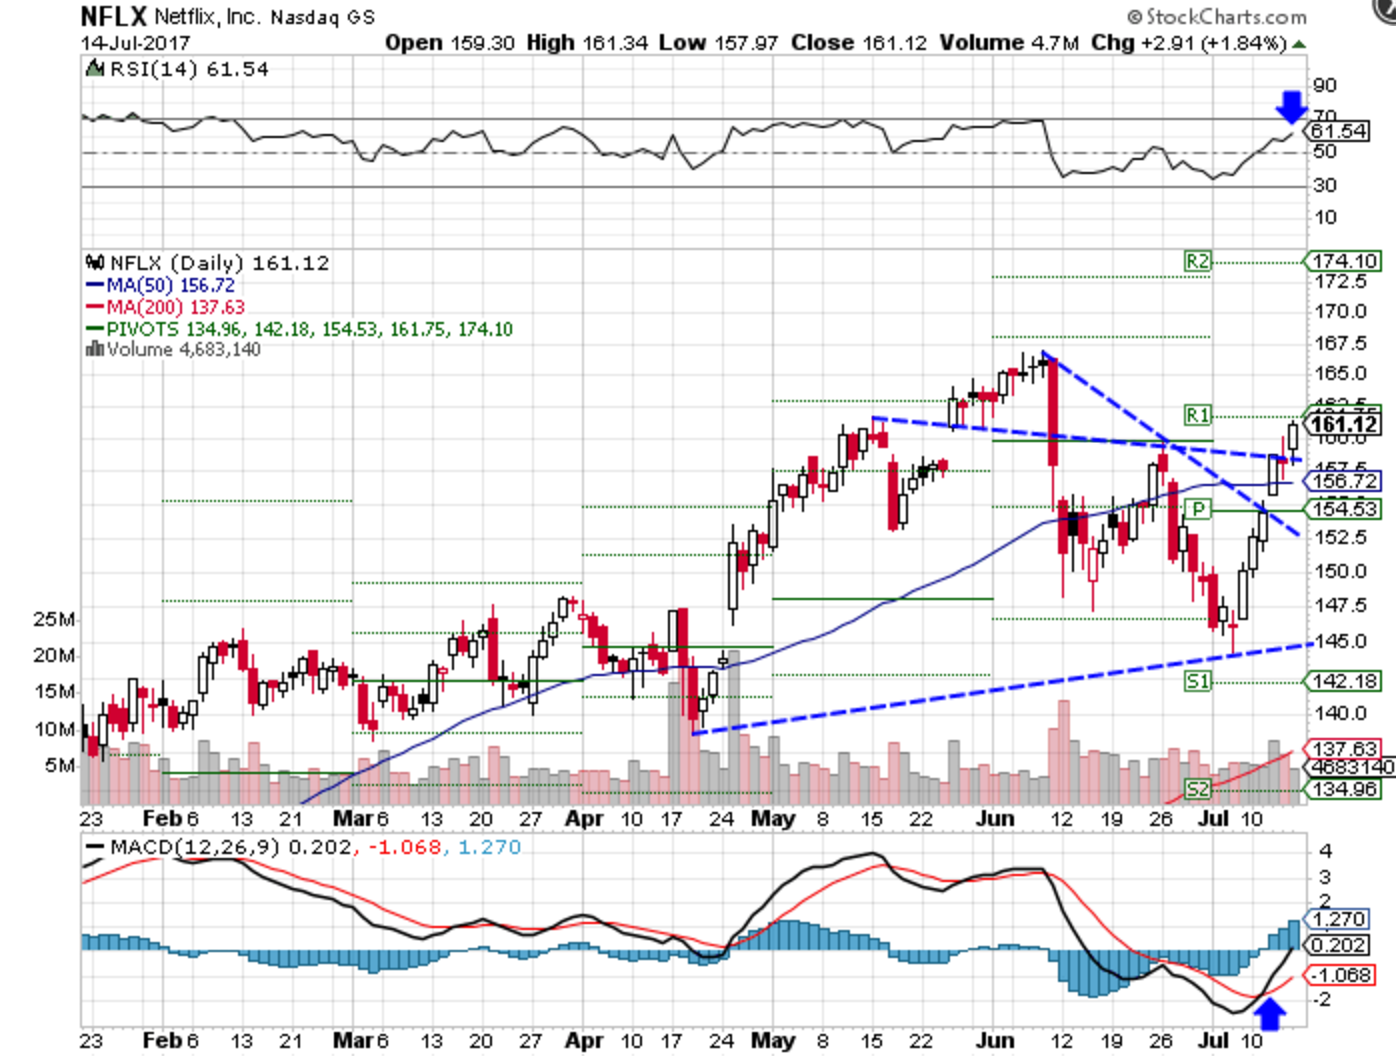 Technical Chart Showing The Recent Performance Offlix, Inc (nflx) Stock